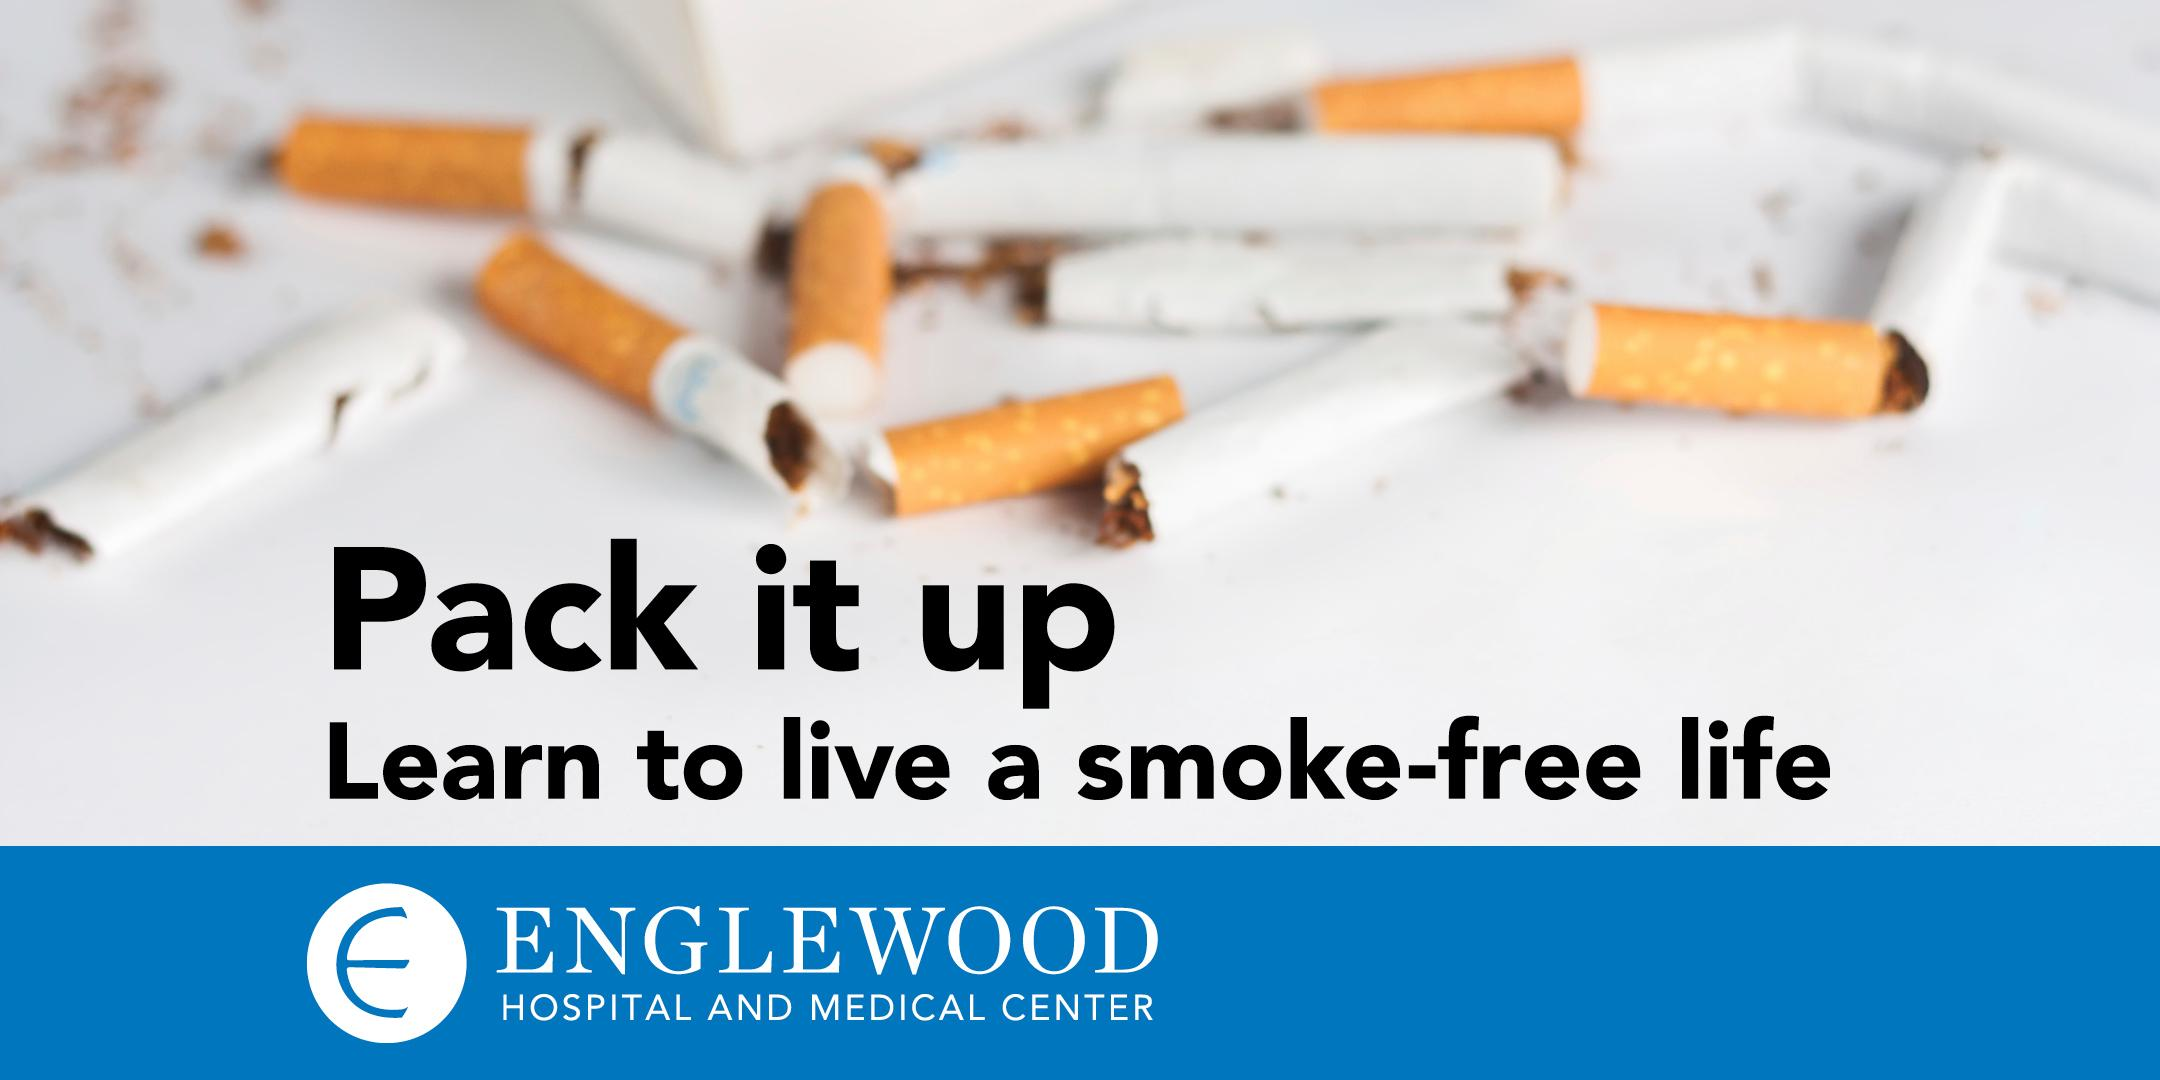 More info: Pack It Up: Smoking Cessation Program with Acupuncture (8-Session Program)